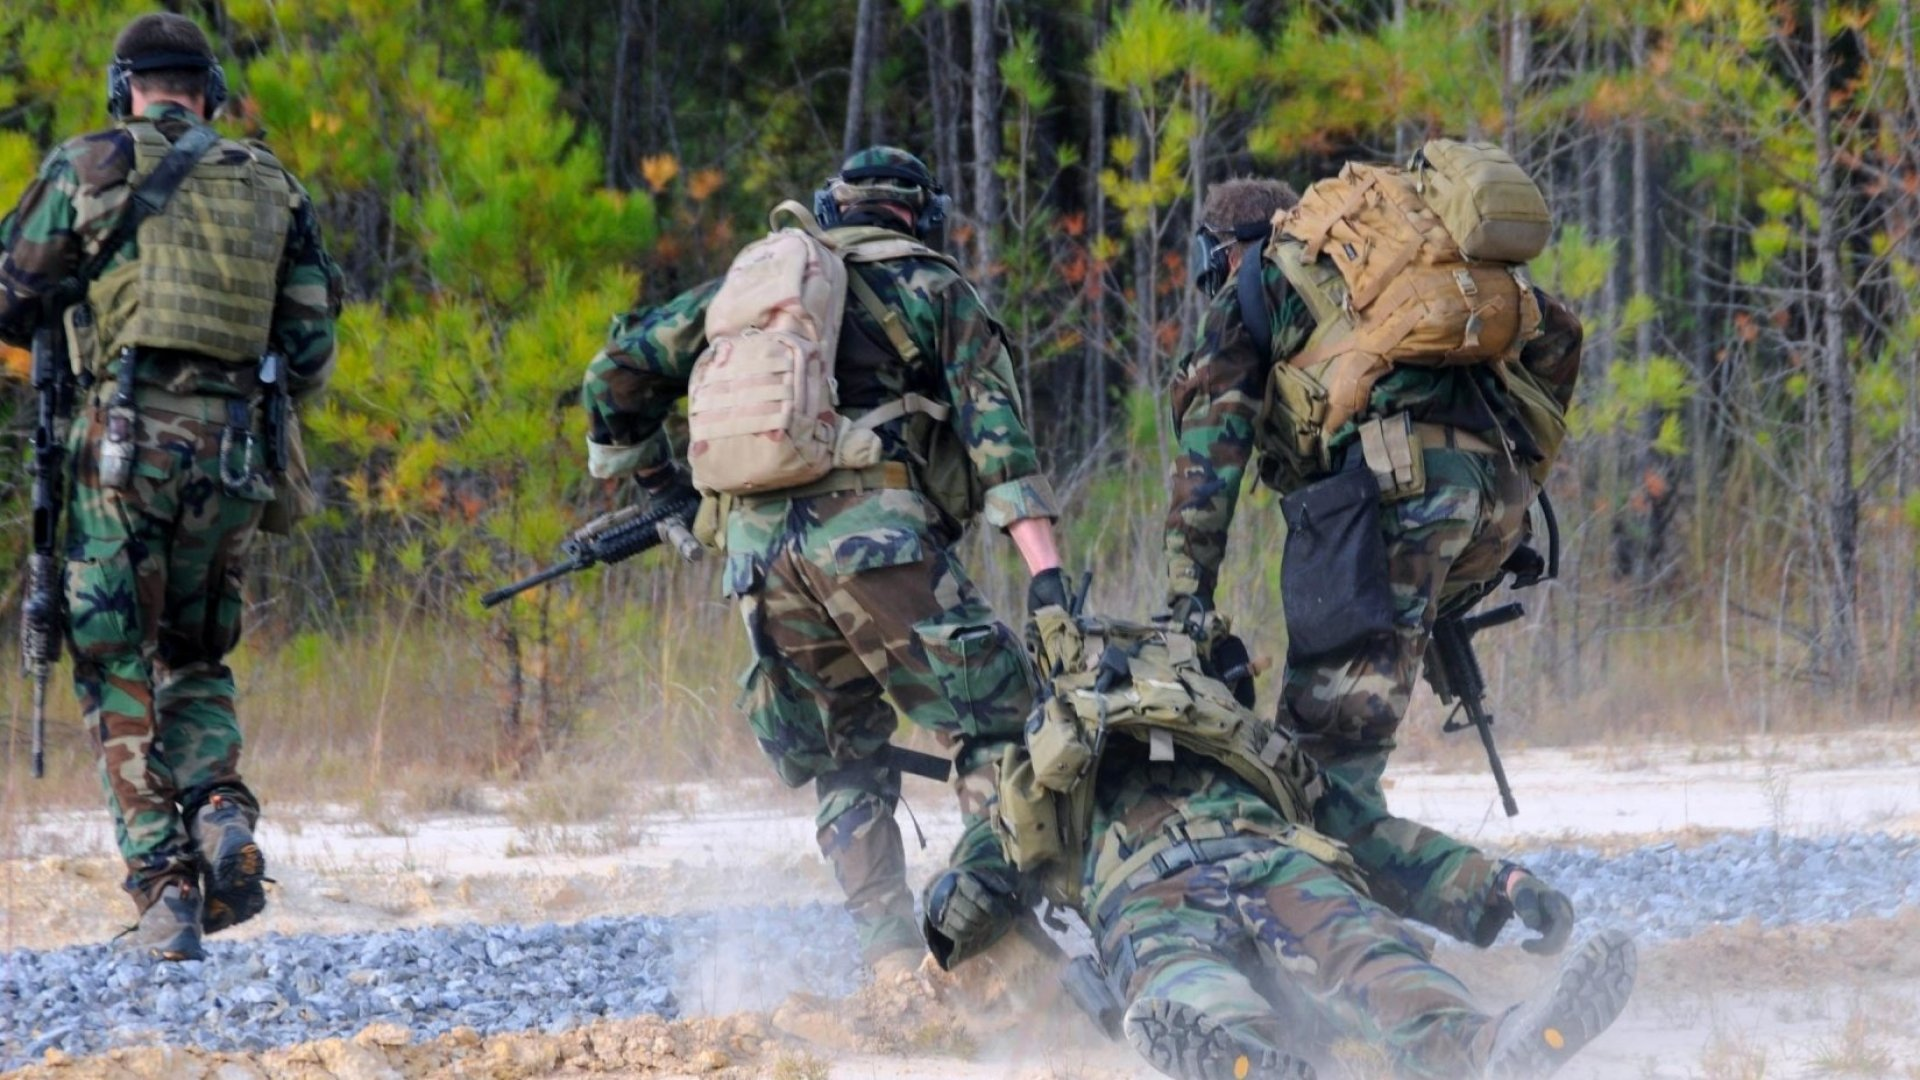 Get Back on the Horse and Stay on the Path: Lessons a Navy SEAL Can Teach You for the New Year